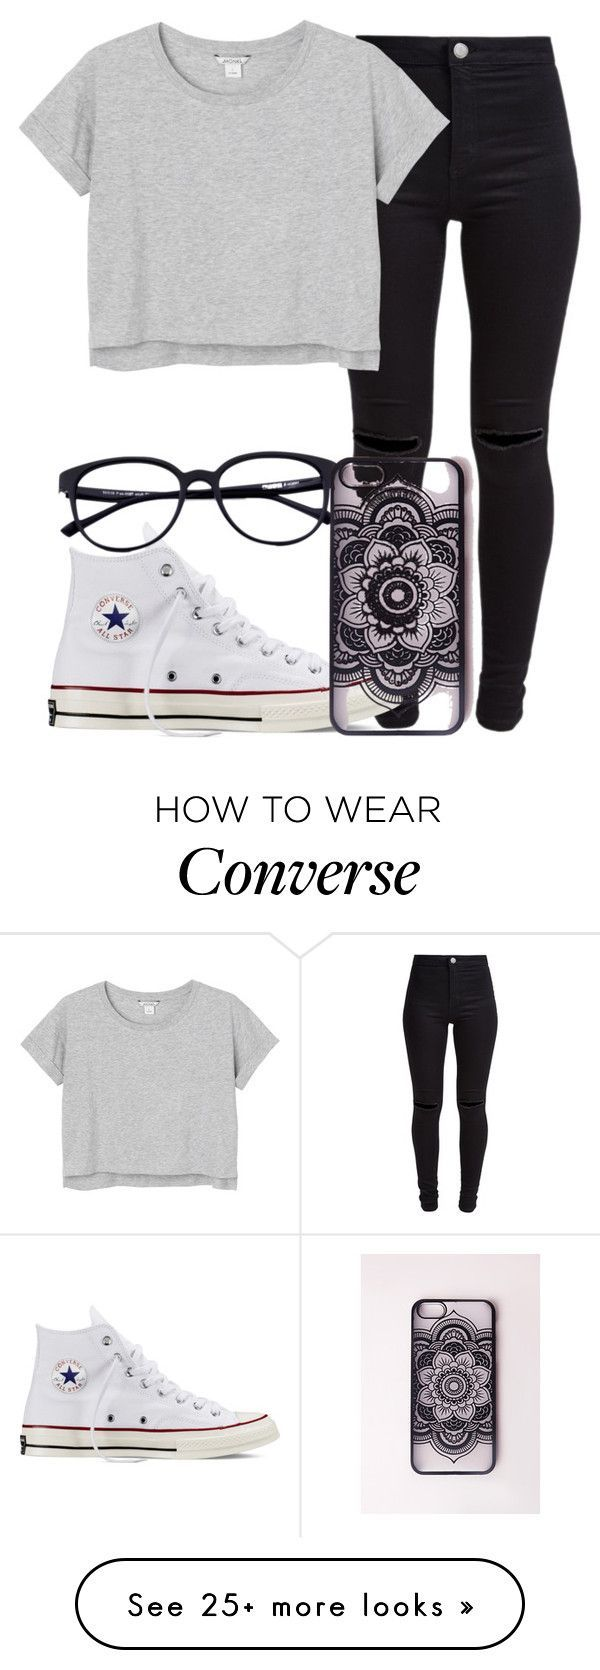 """Mandala 4"" by mallorimae on Polyvore featuring New Look, Monki, Converse and Missguided"